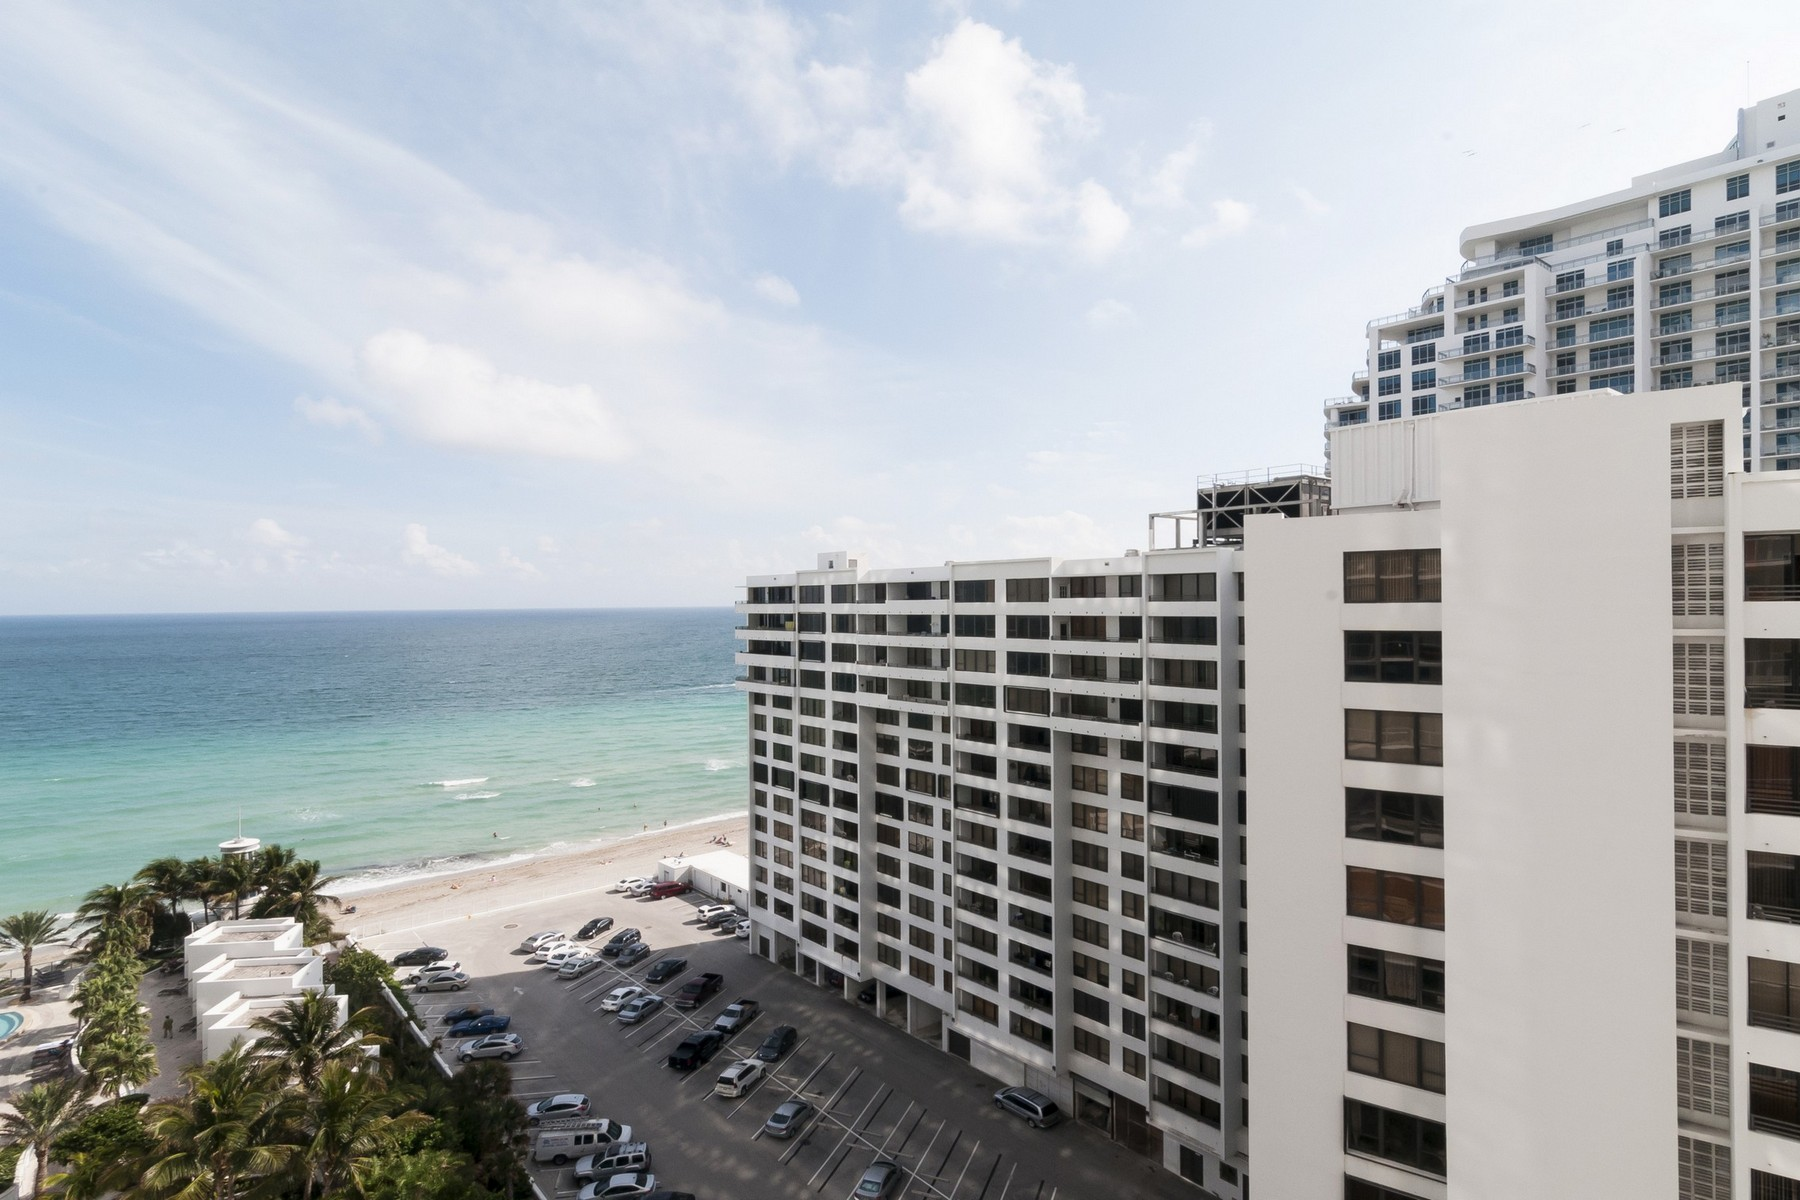 Condominium for Sale at 3101 Bayshore Dr. #1402 Fort Lauderdale, Florida 33304 United States